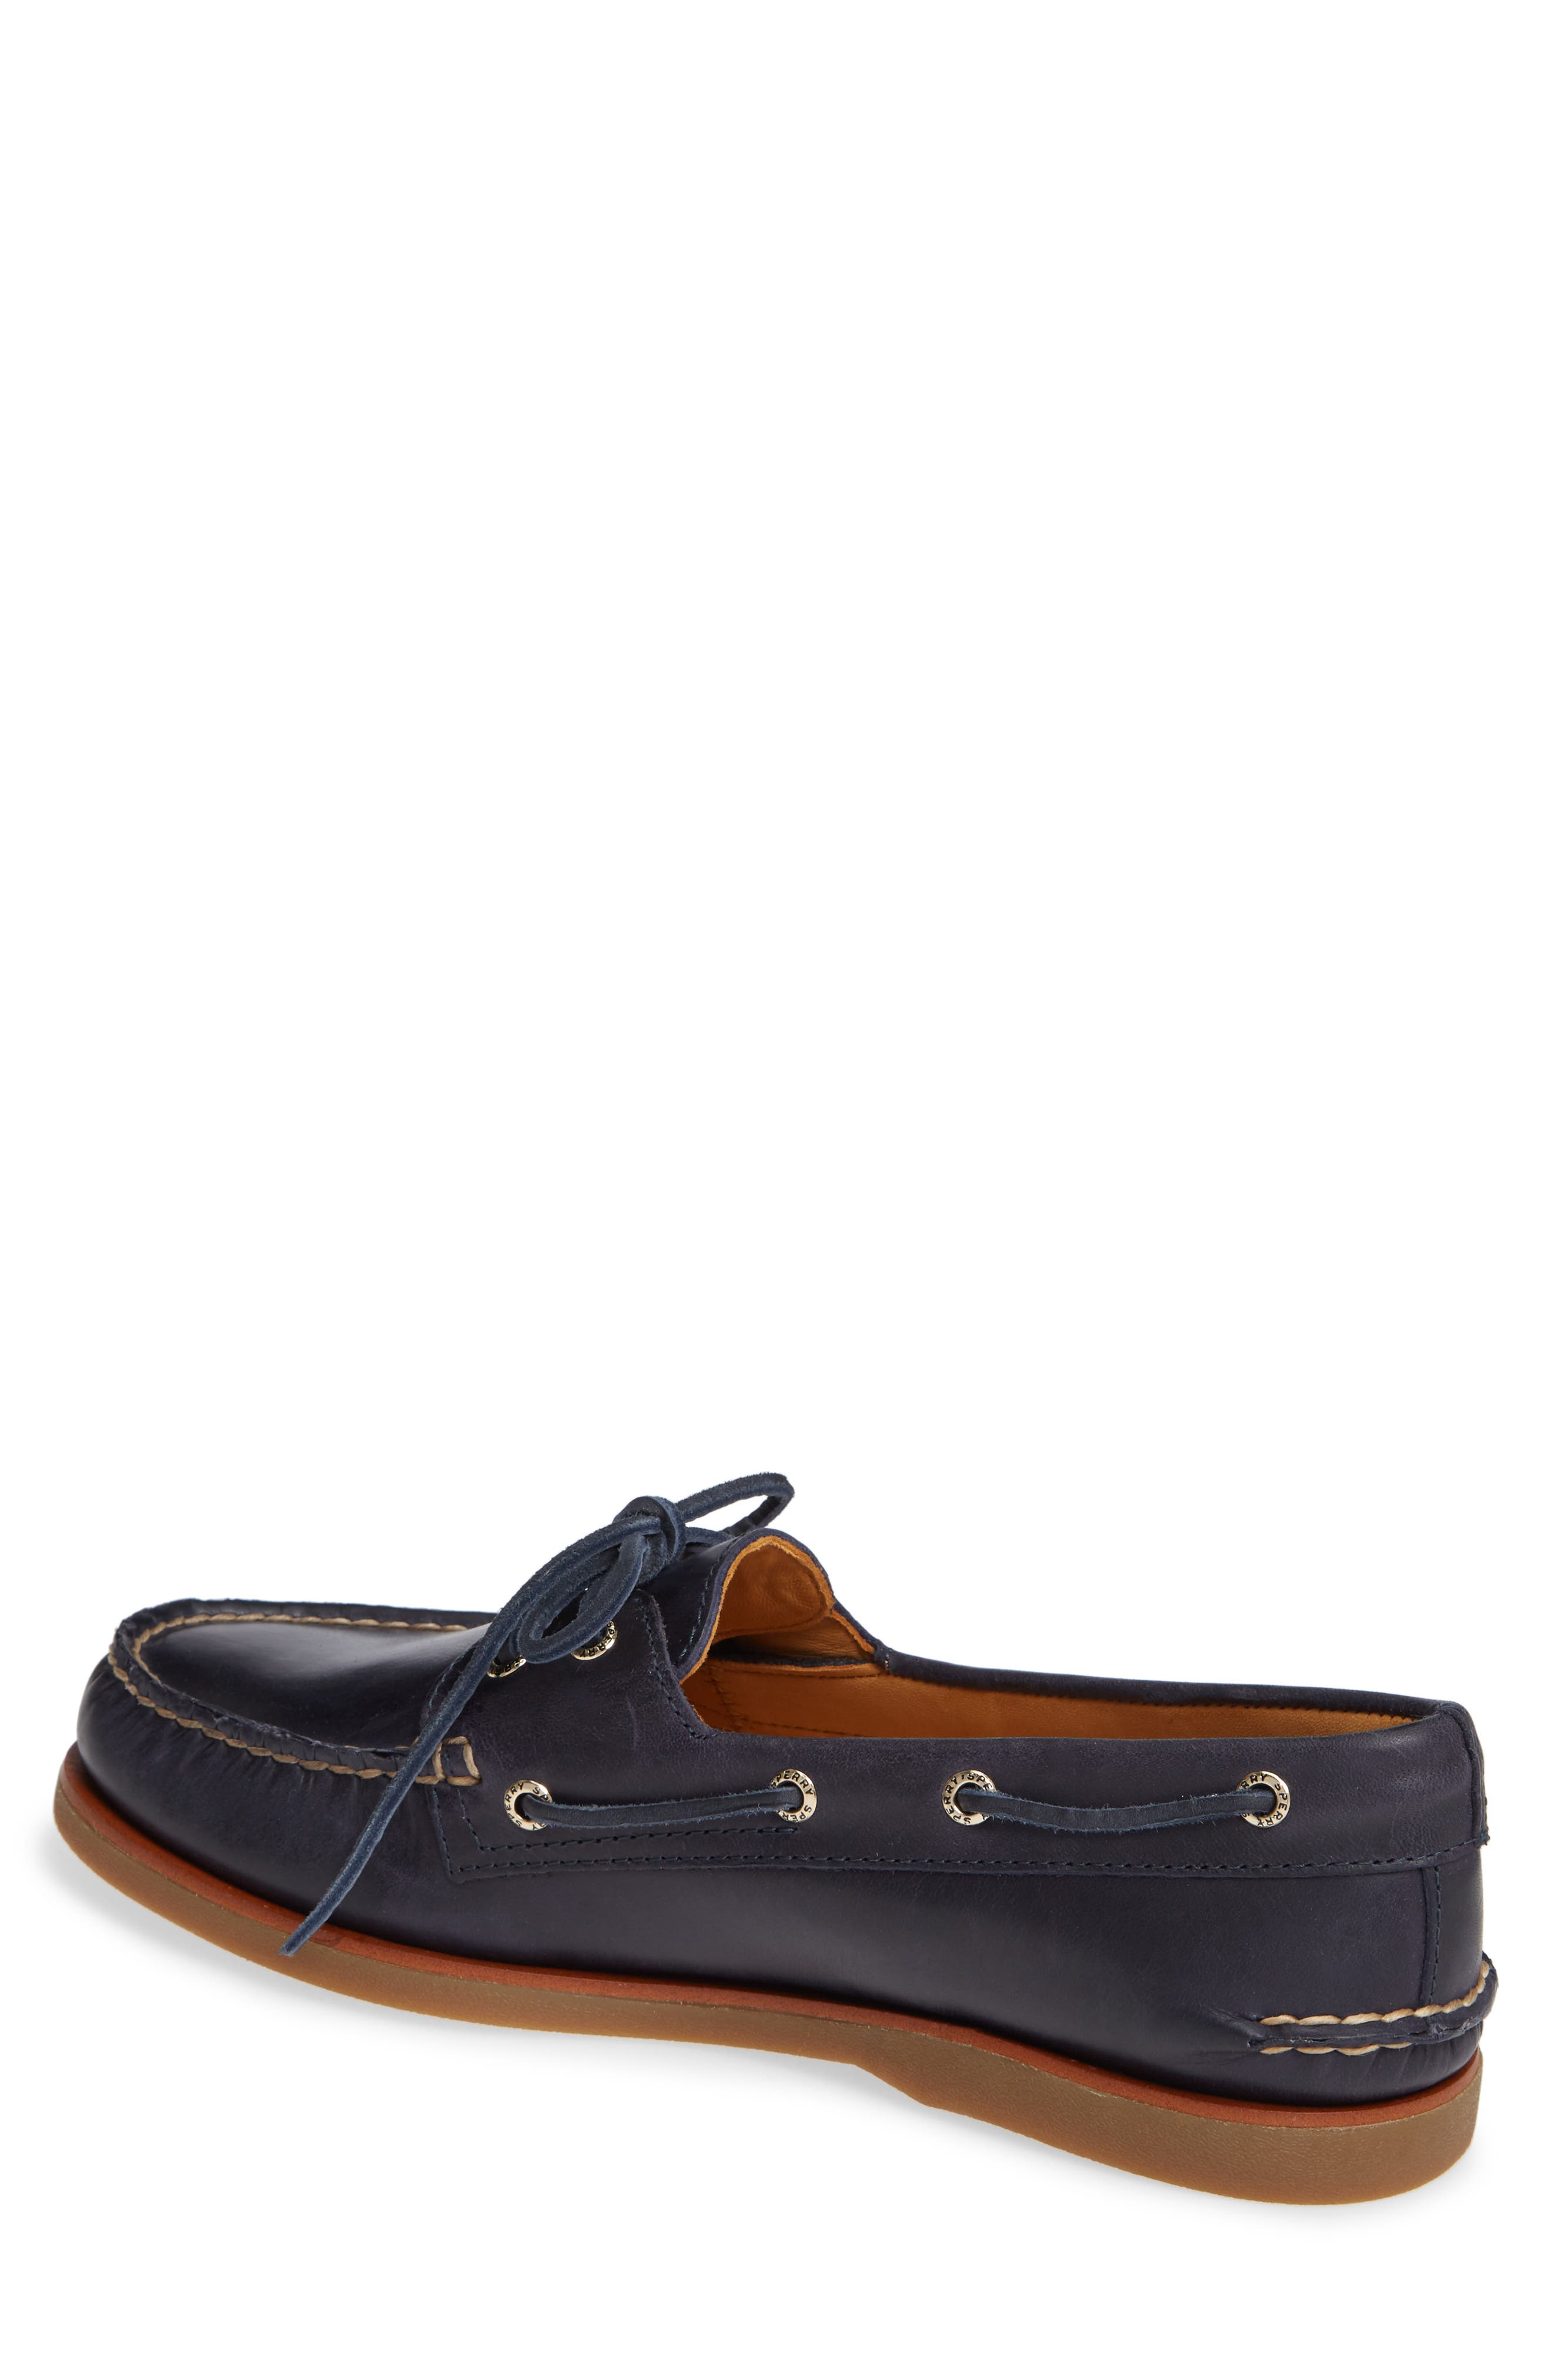 Gold Cup Boat Shoe,                             Alternate thumbnail 2, color,                             NAVY/ GUM